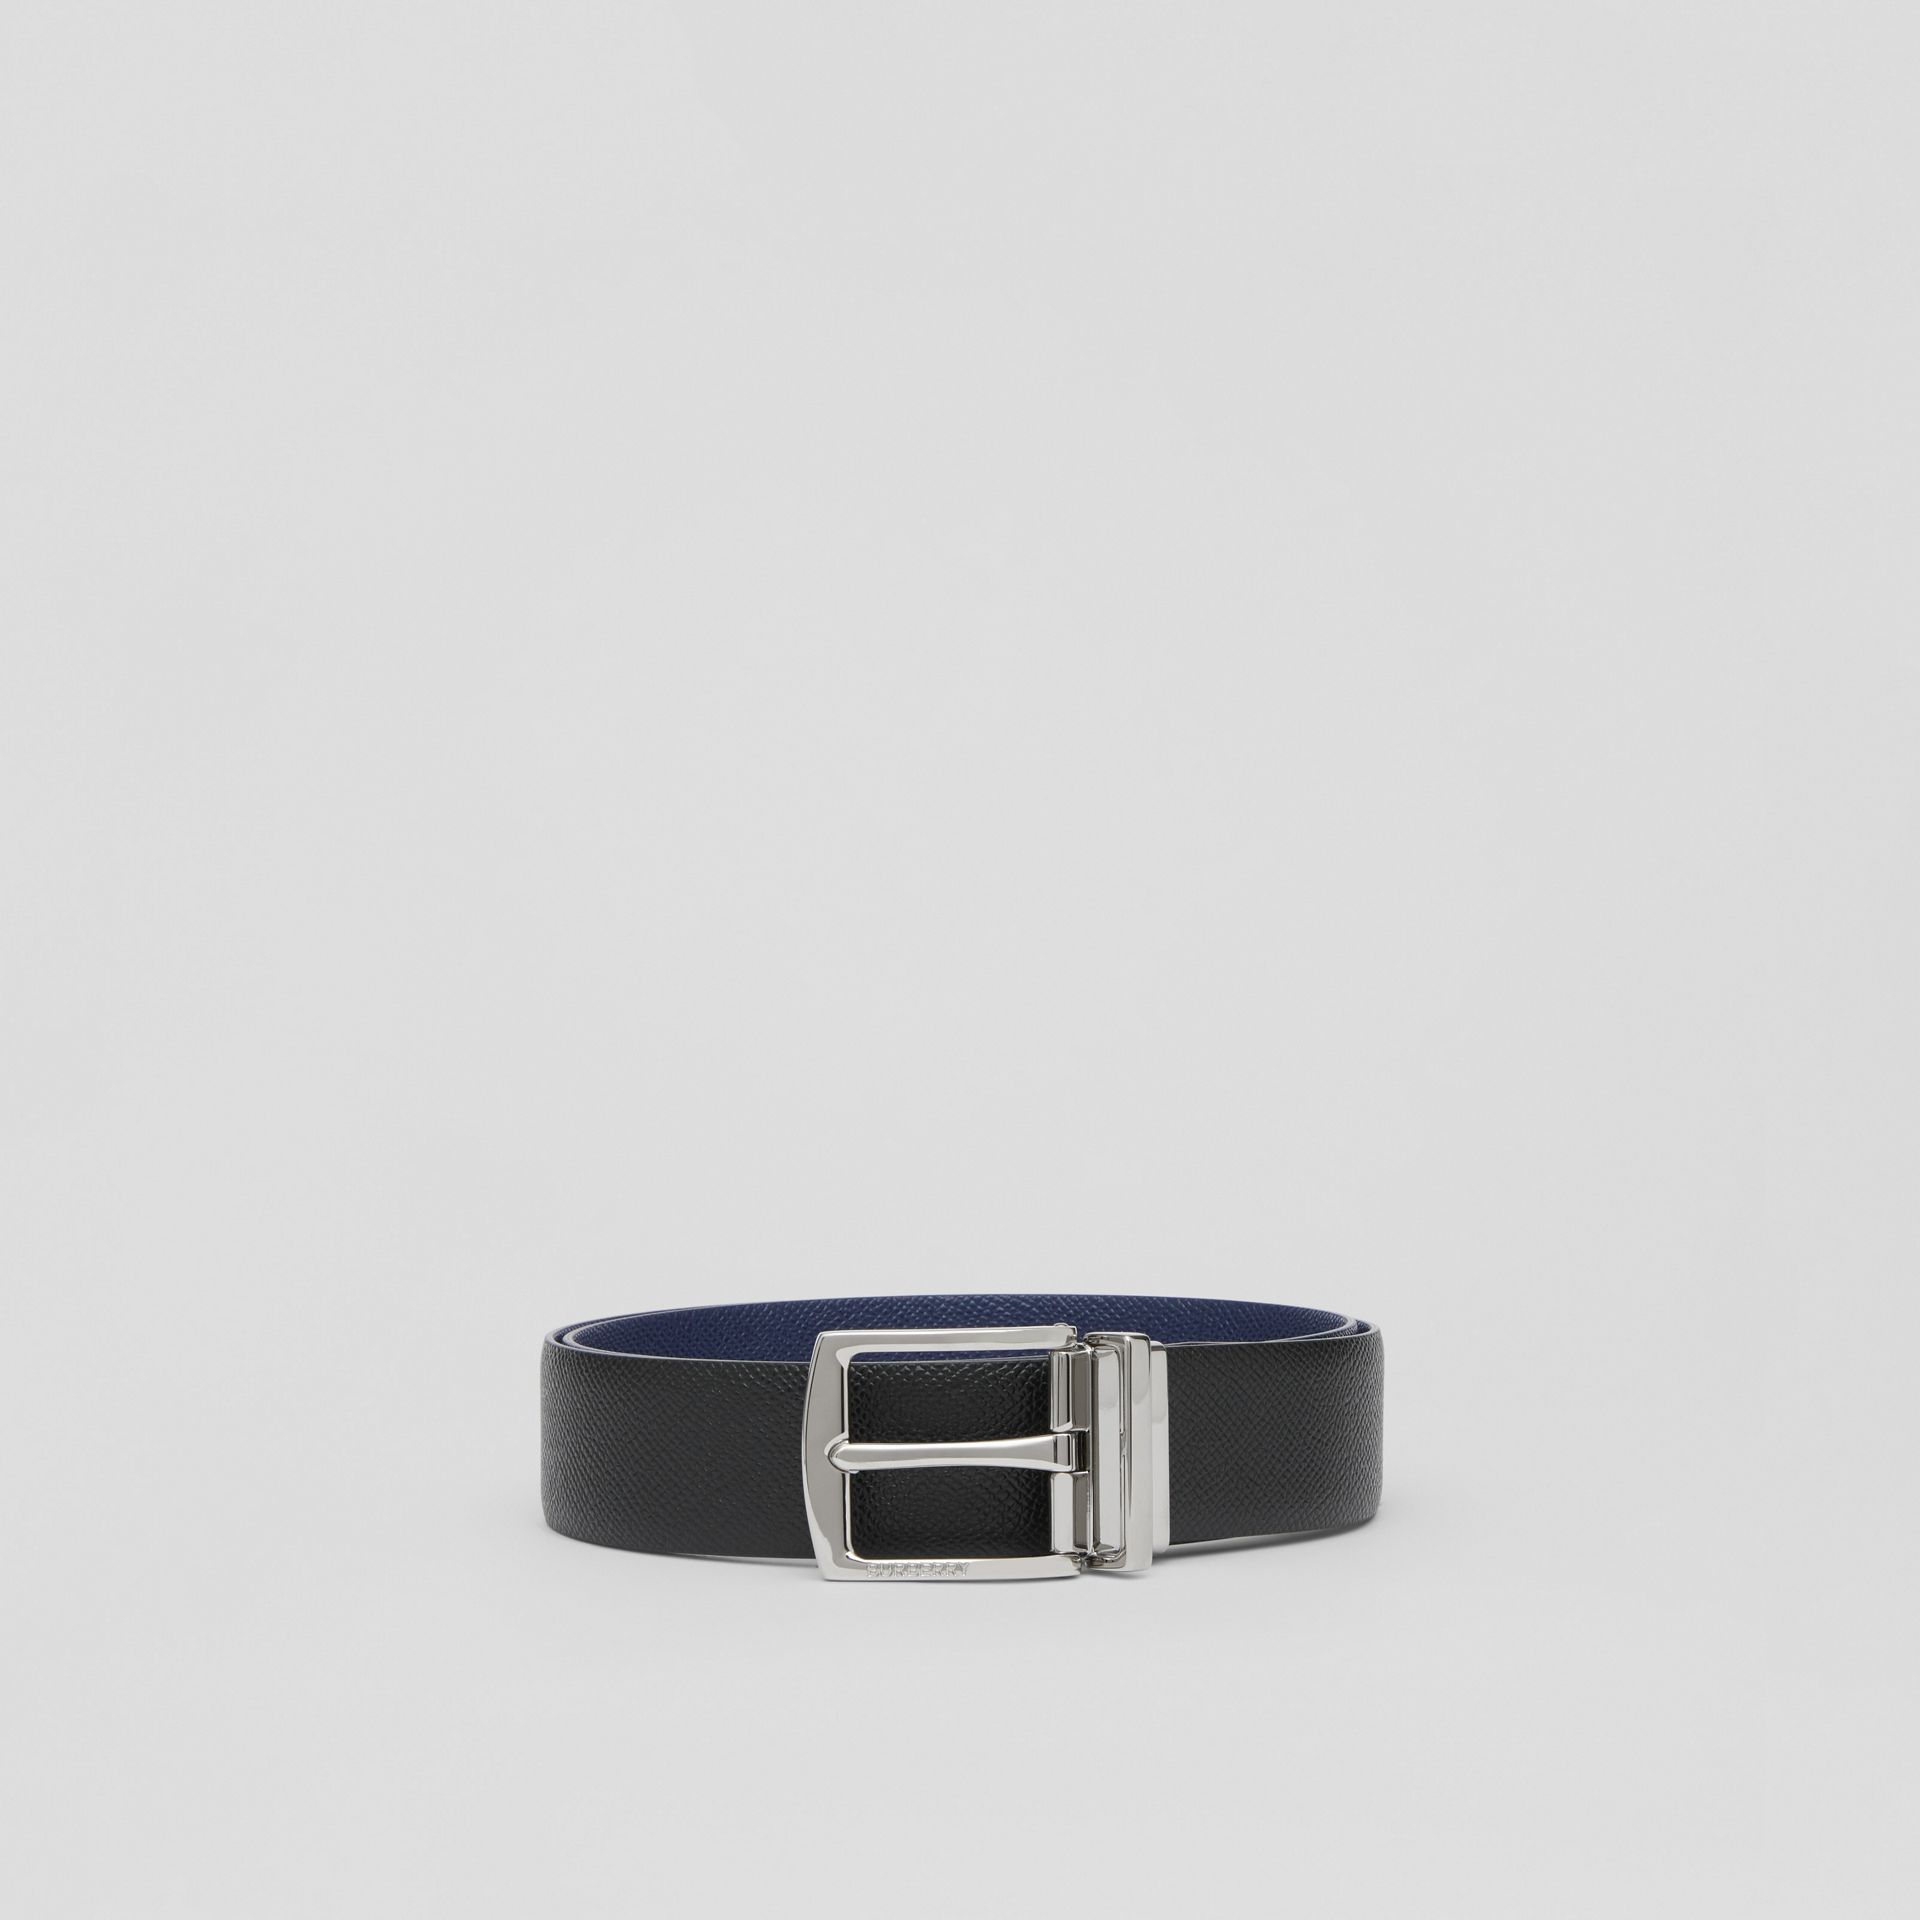 Reversible Grainy Leather Belt in Black/navy - Men | Burberry Hong Kong S.A.R - gallery image 3